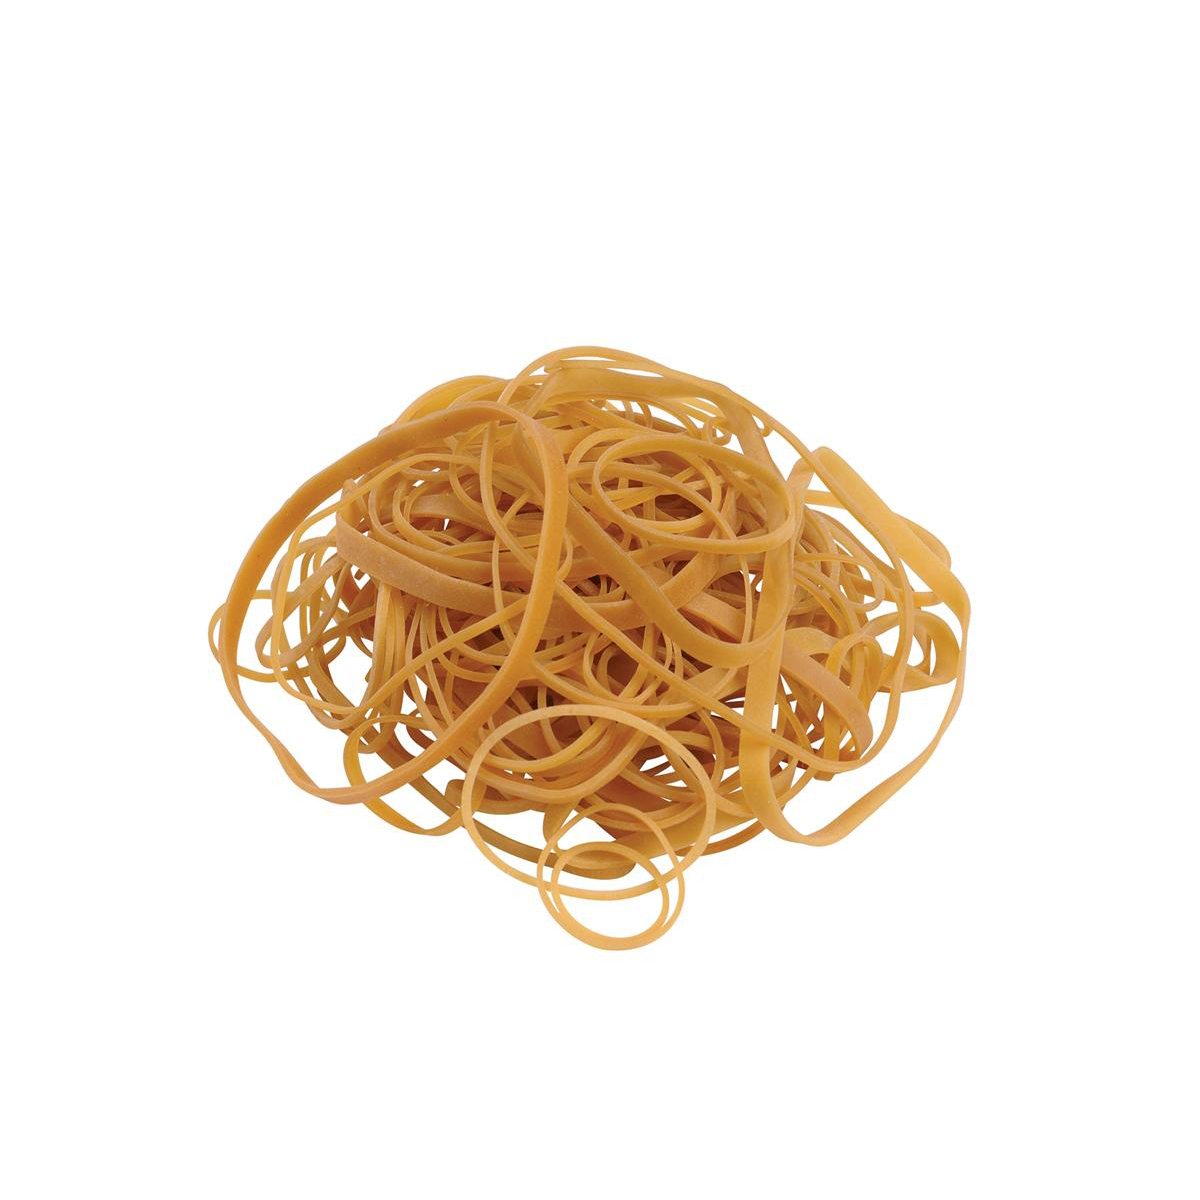 5 Star Office Rubber Bands Assorted Sizes Bag 0.454kg